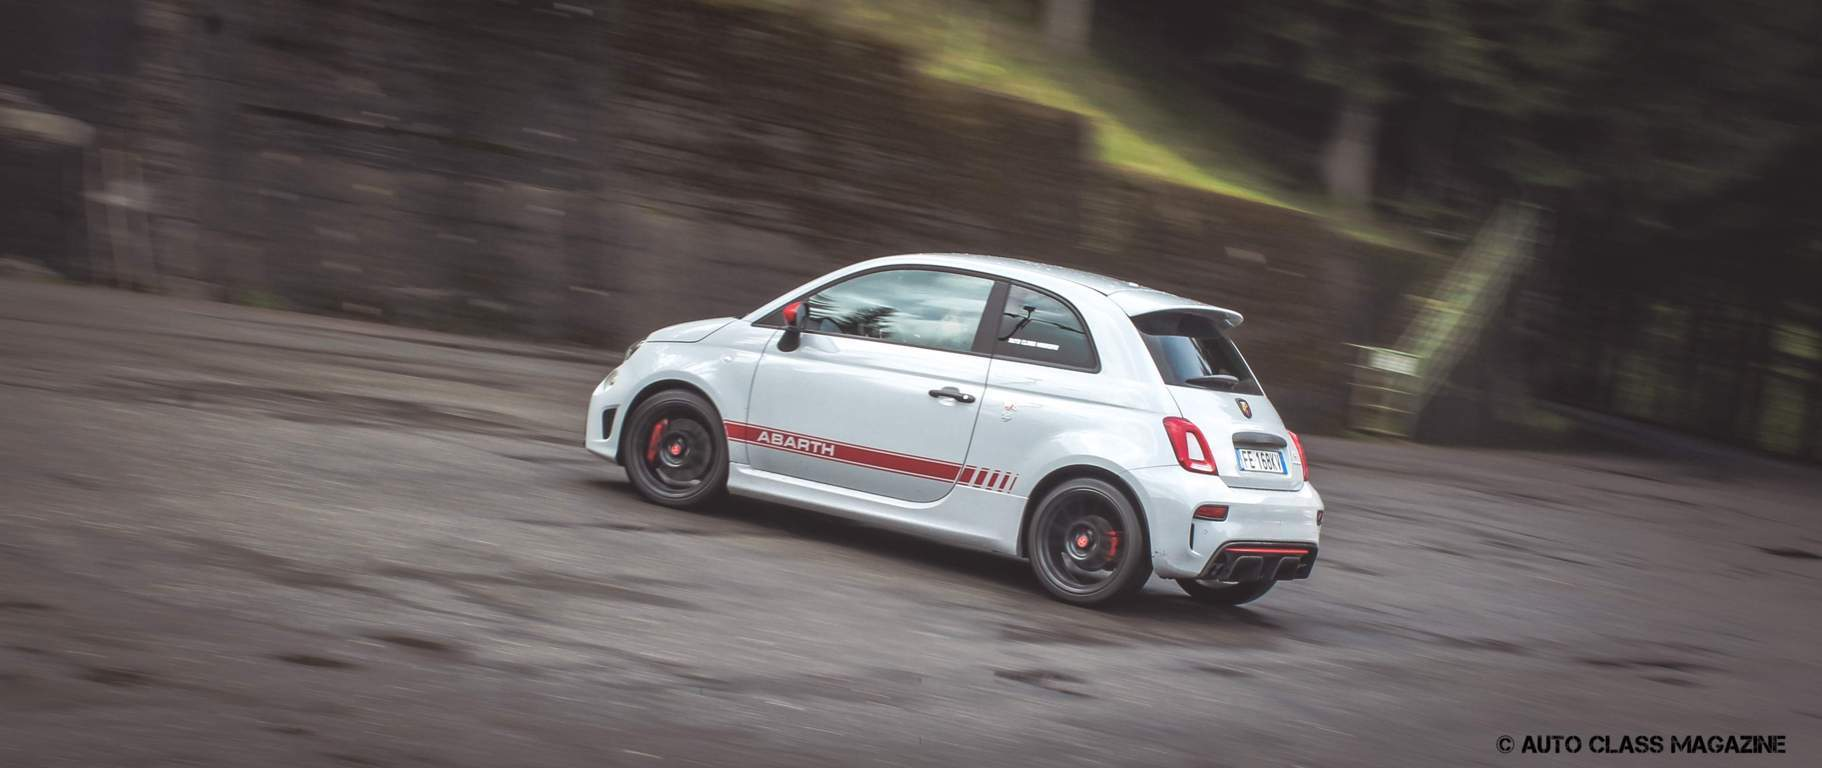 abarth 595 competizione the smallest supercar auto class magazine. Black Bedroom Furniture Sets. Home Design Ideas